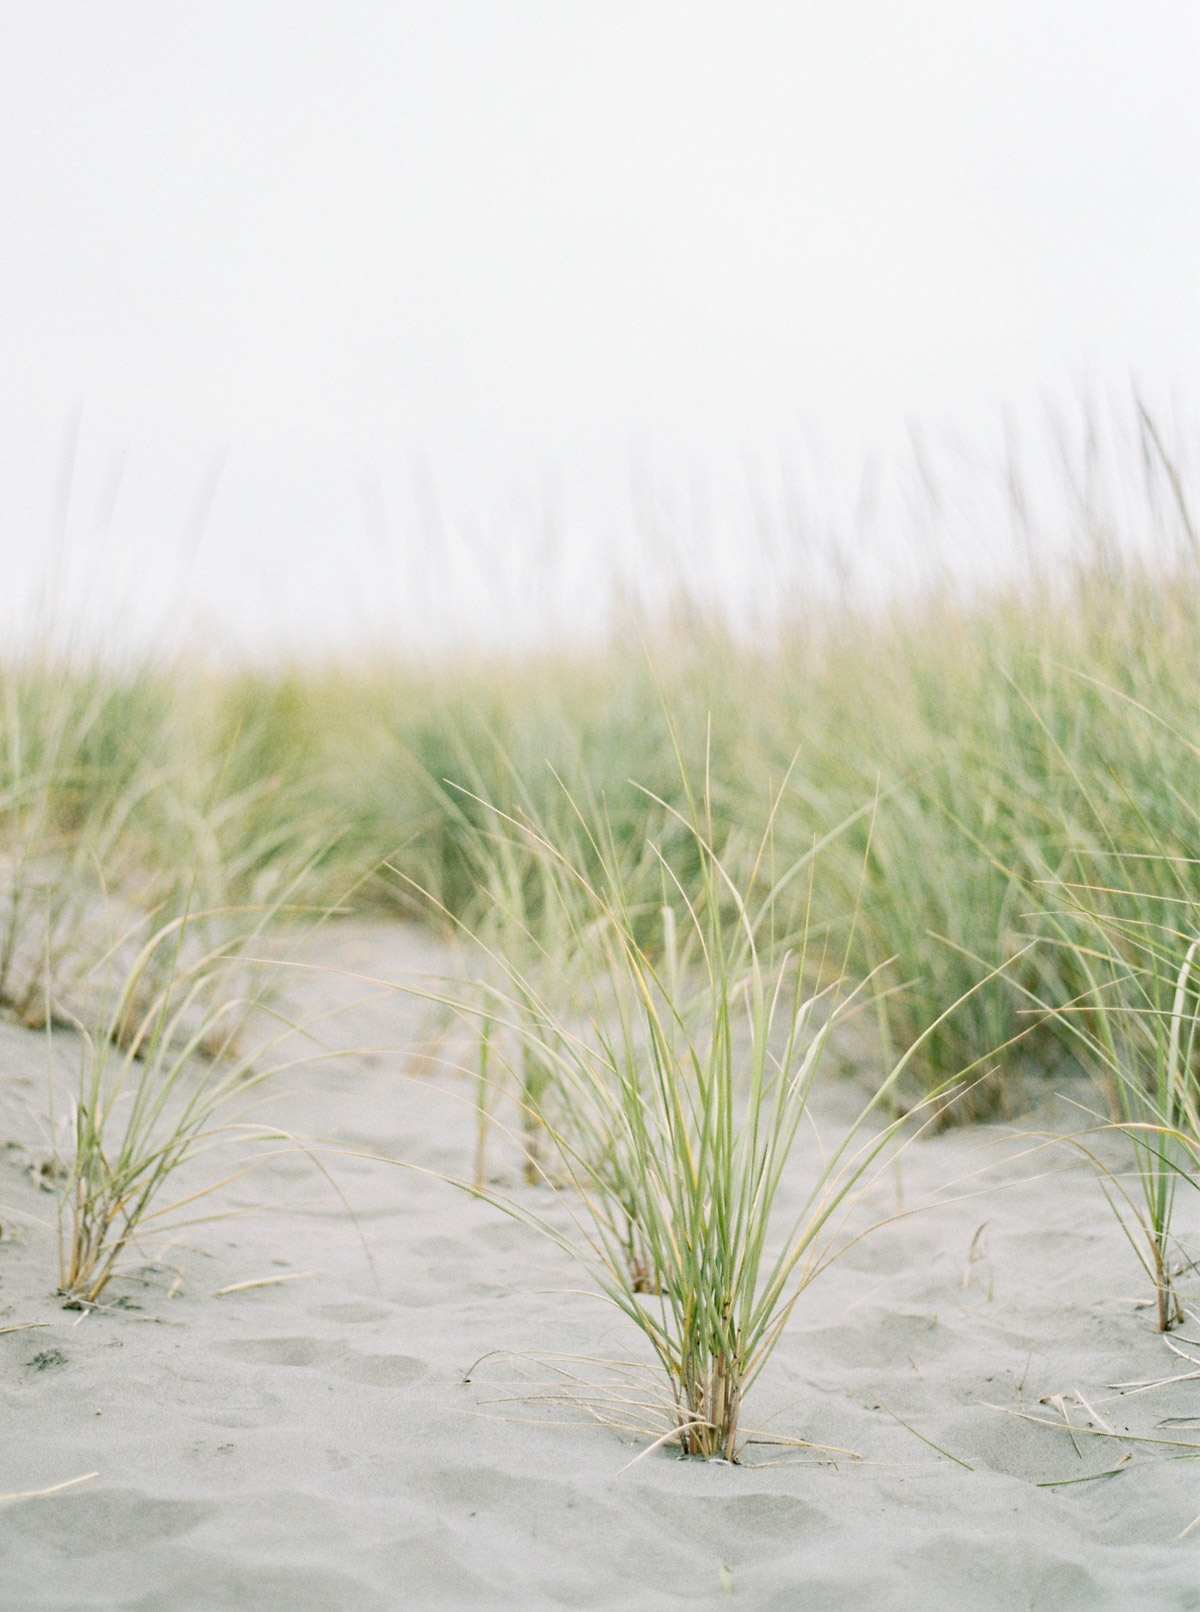 Photograph of Sea grass on a washington coast beach